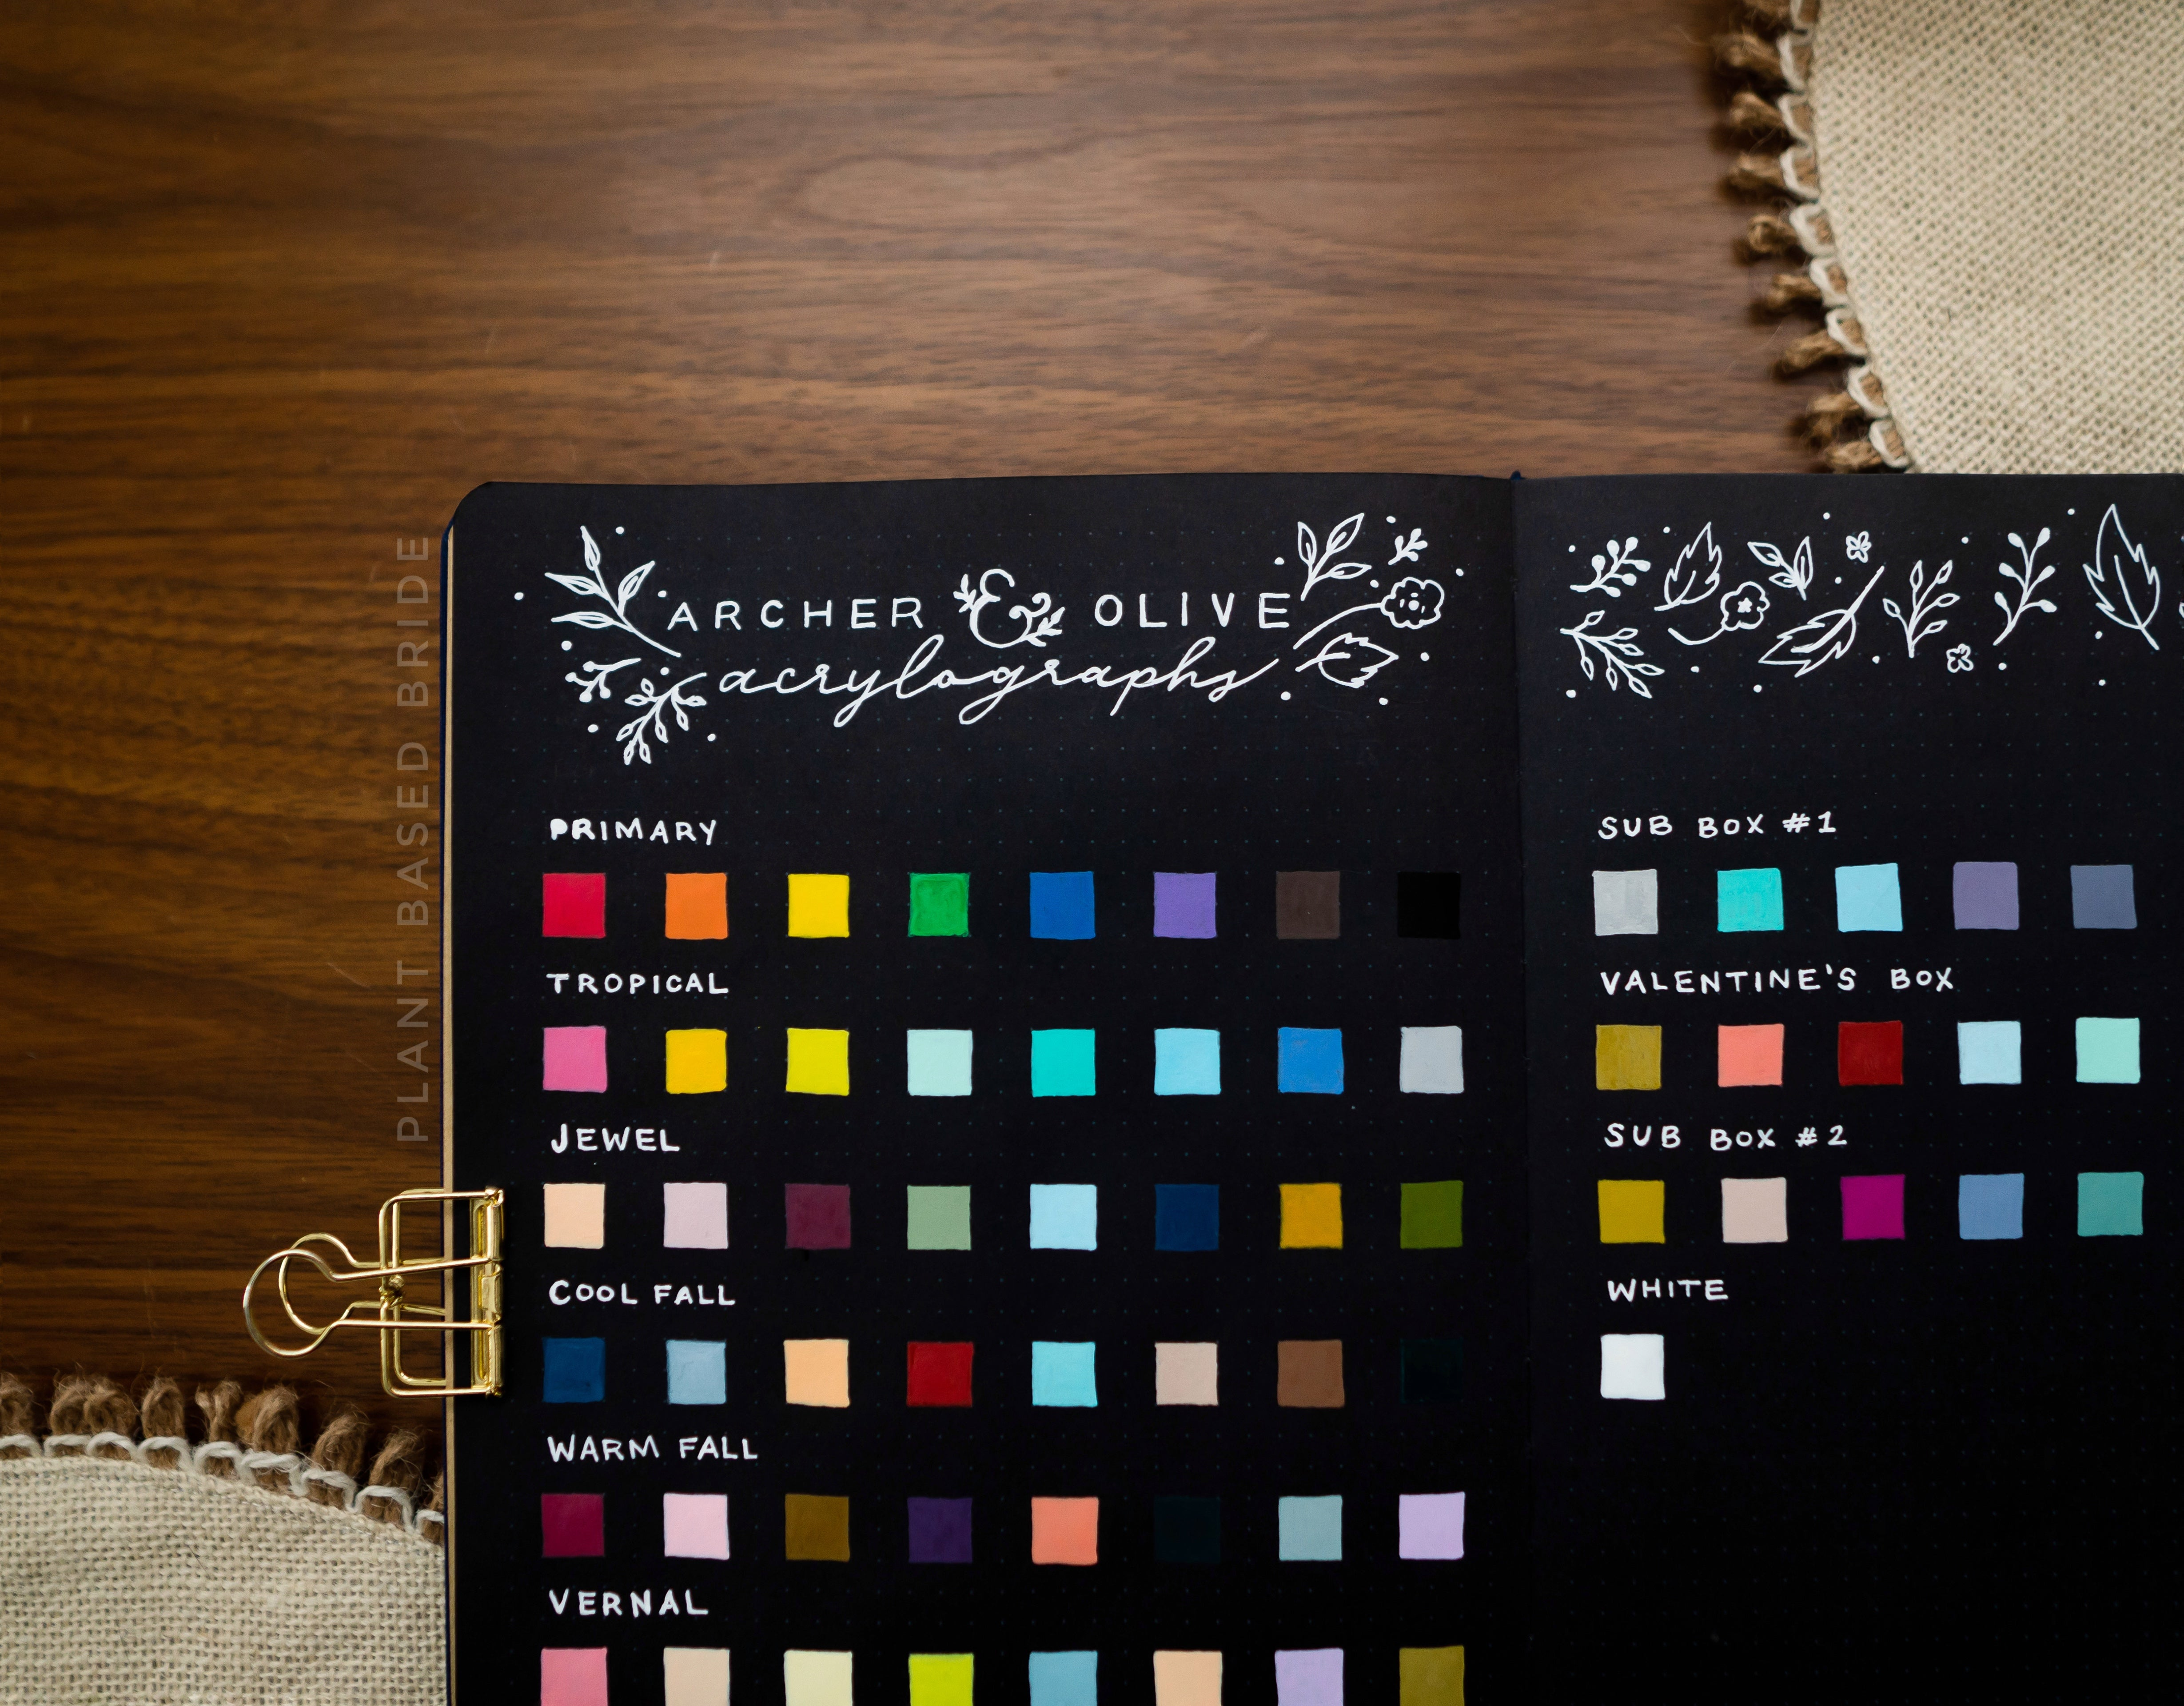 Archer & Olive Acrylograph Swatches Black Paper